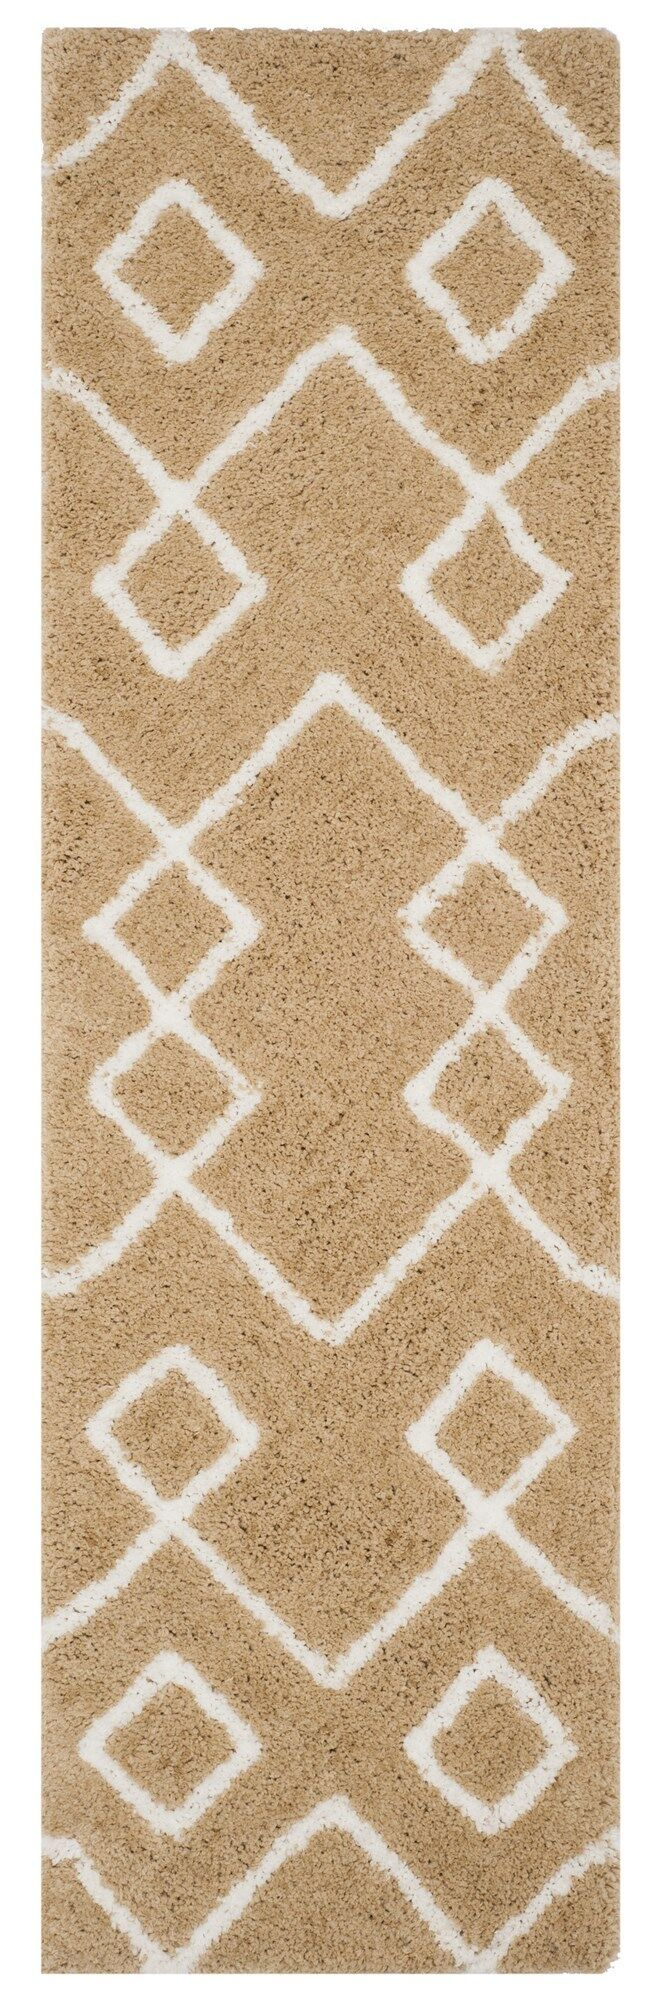 Shead Hand-Tufted Beige/Ivory Area Rug Rug Size: Runner 2'3